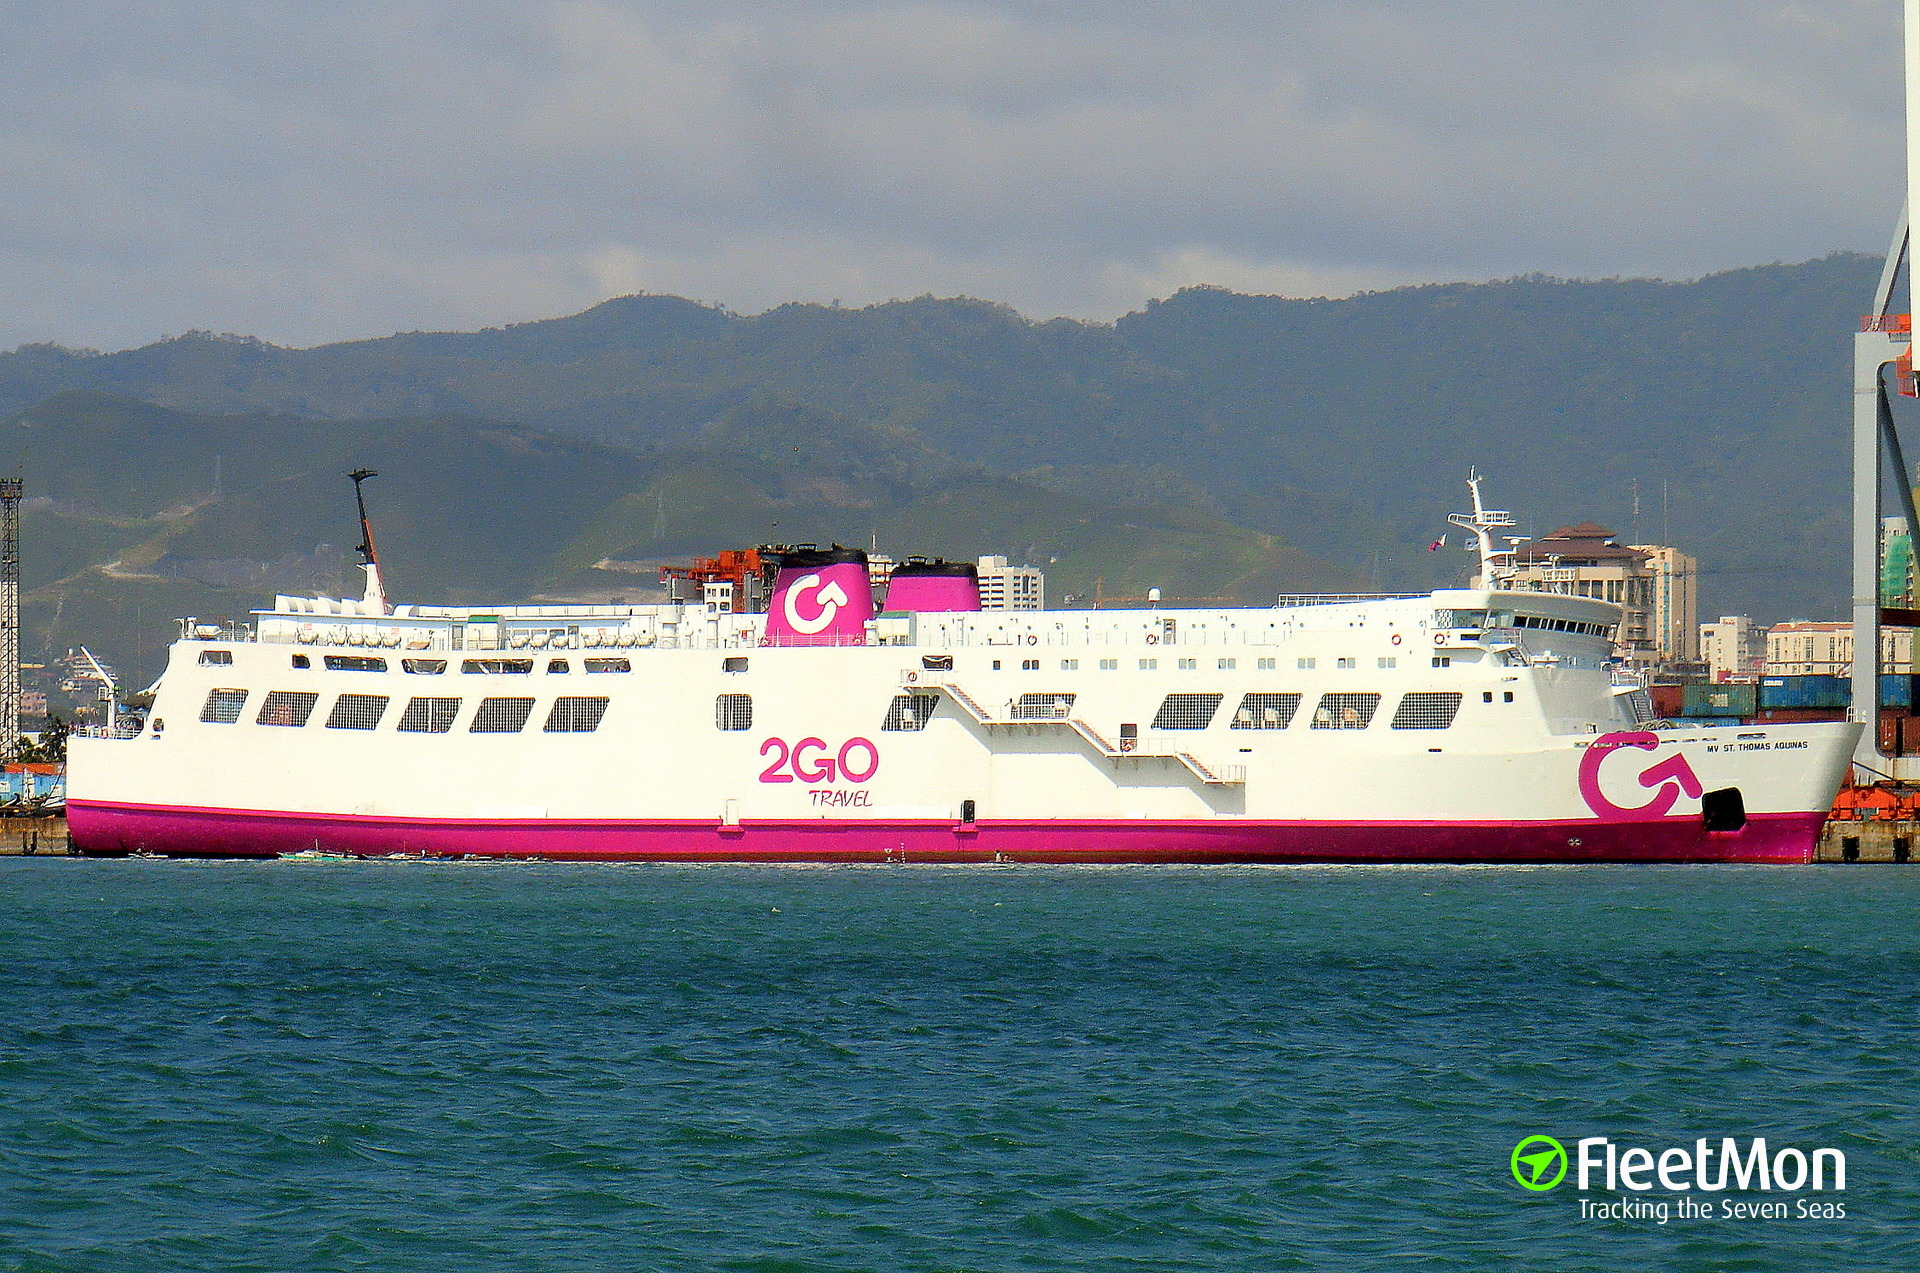 Ferry St. Thomas of Aquinas sank after collision with m/v Sulpicio Express 7, Philippines